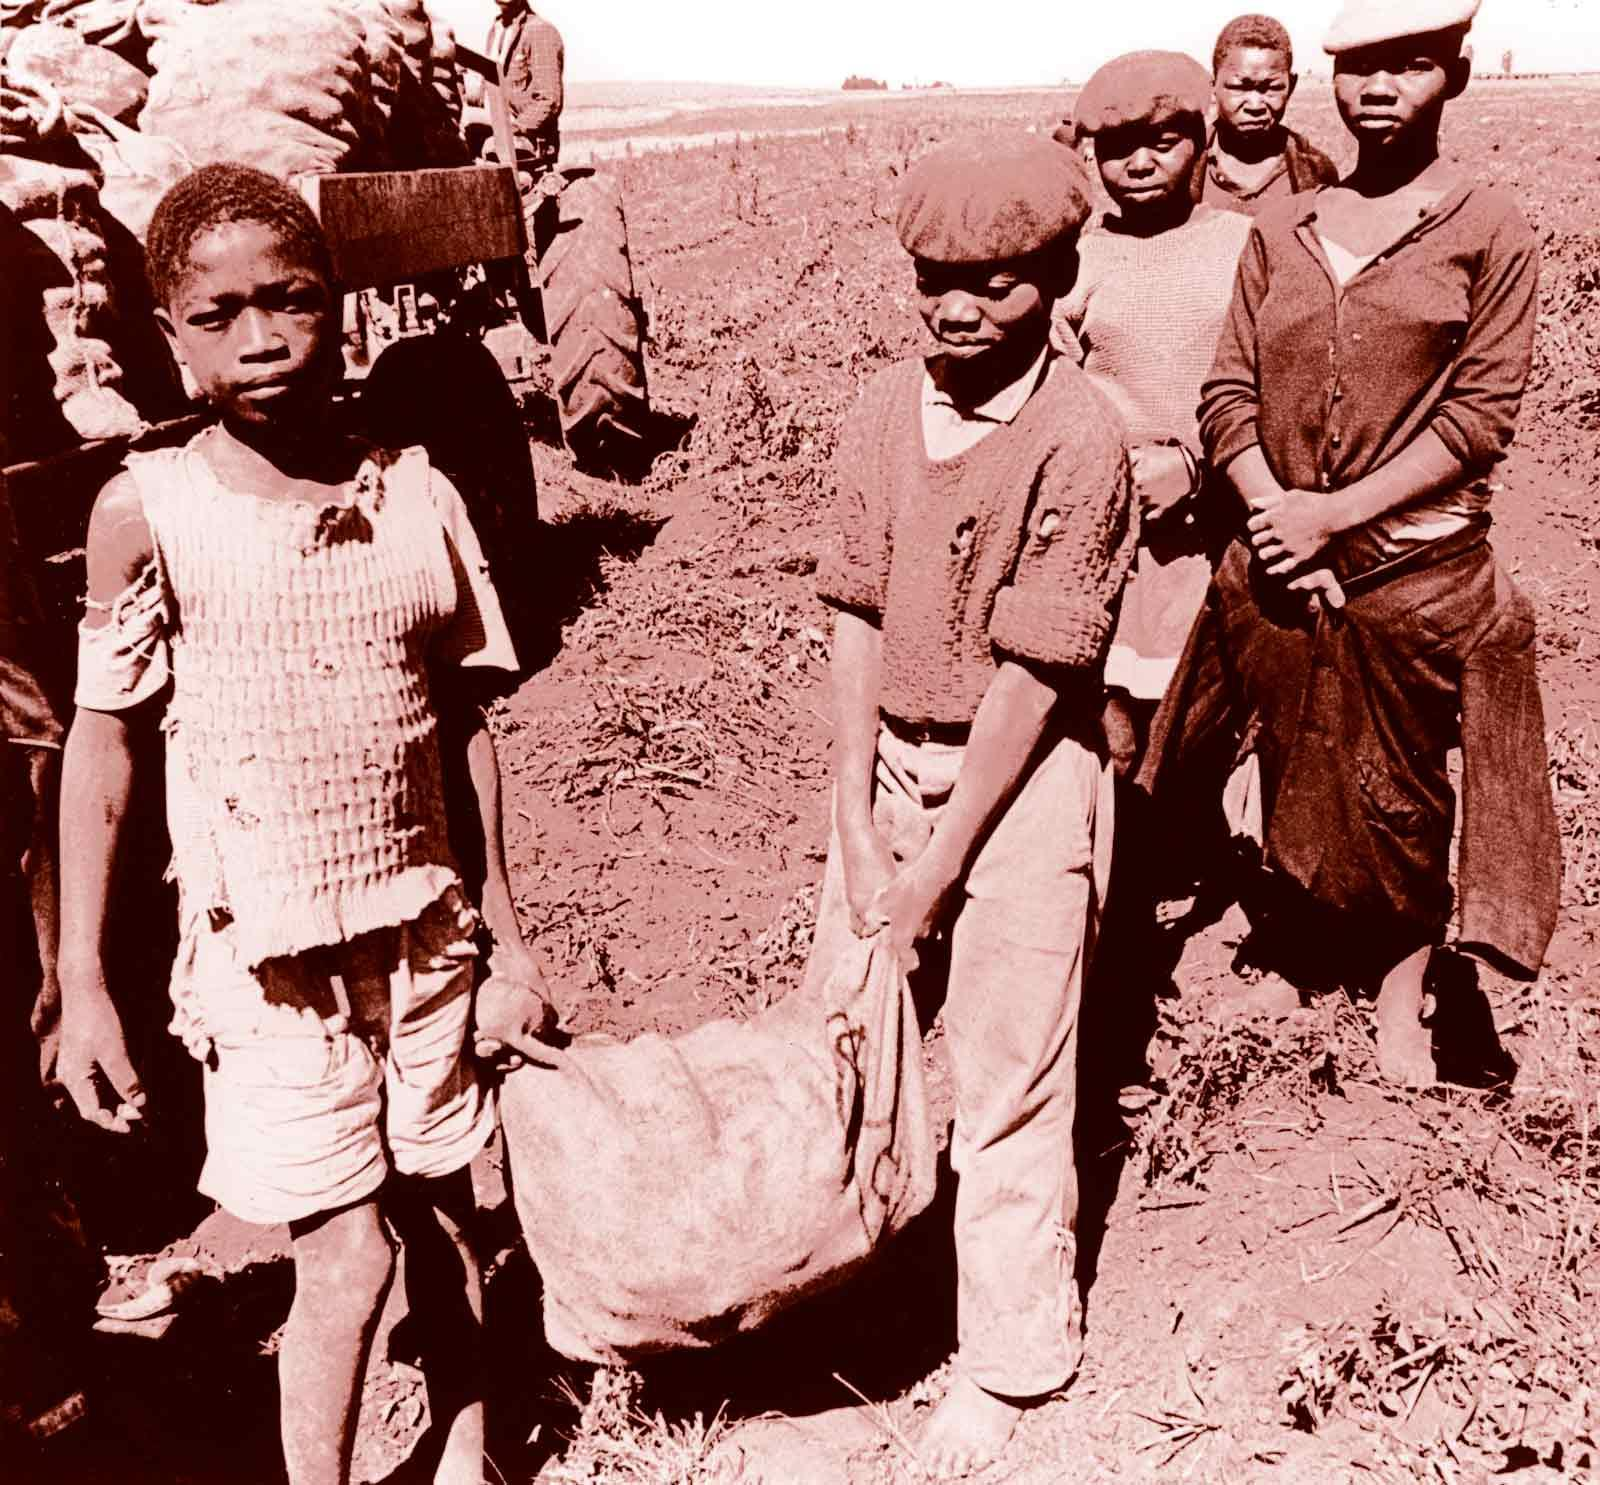 Child labourers in South Africa, 1970s